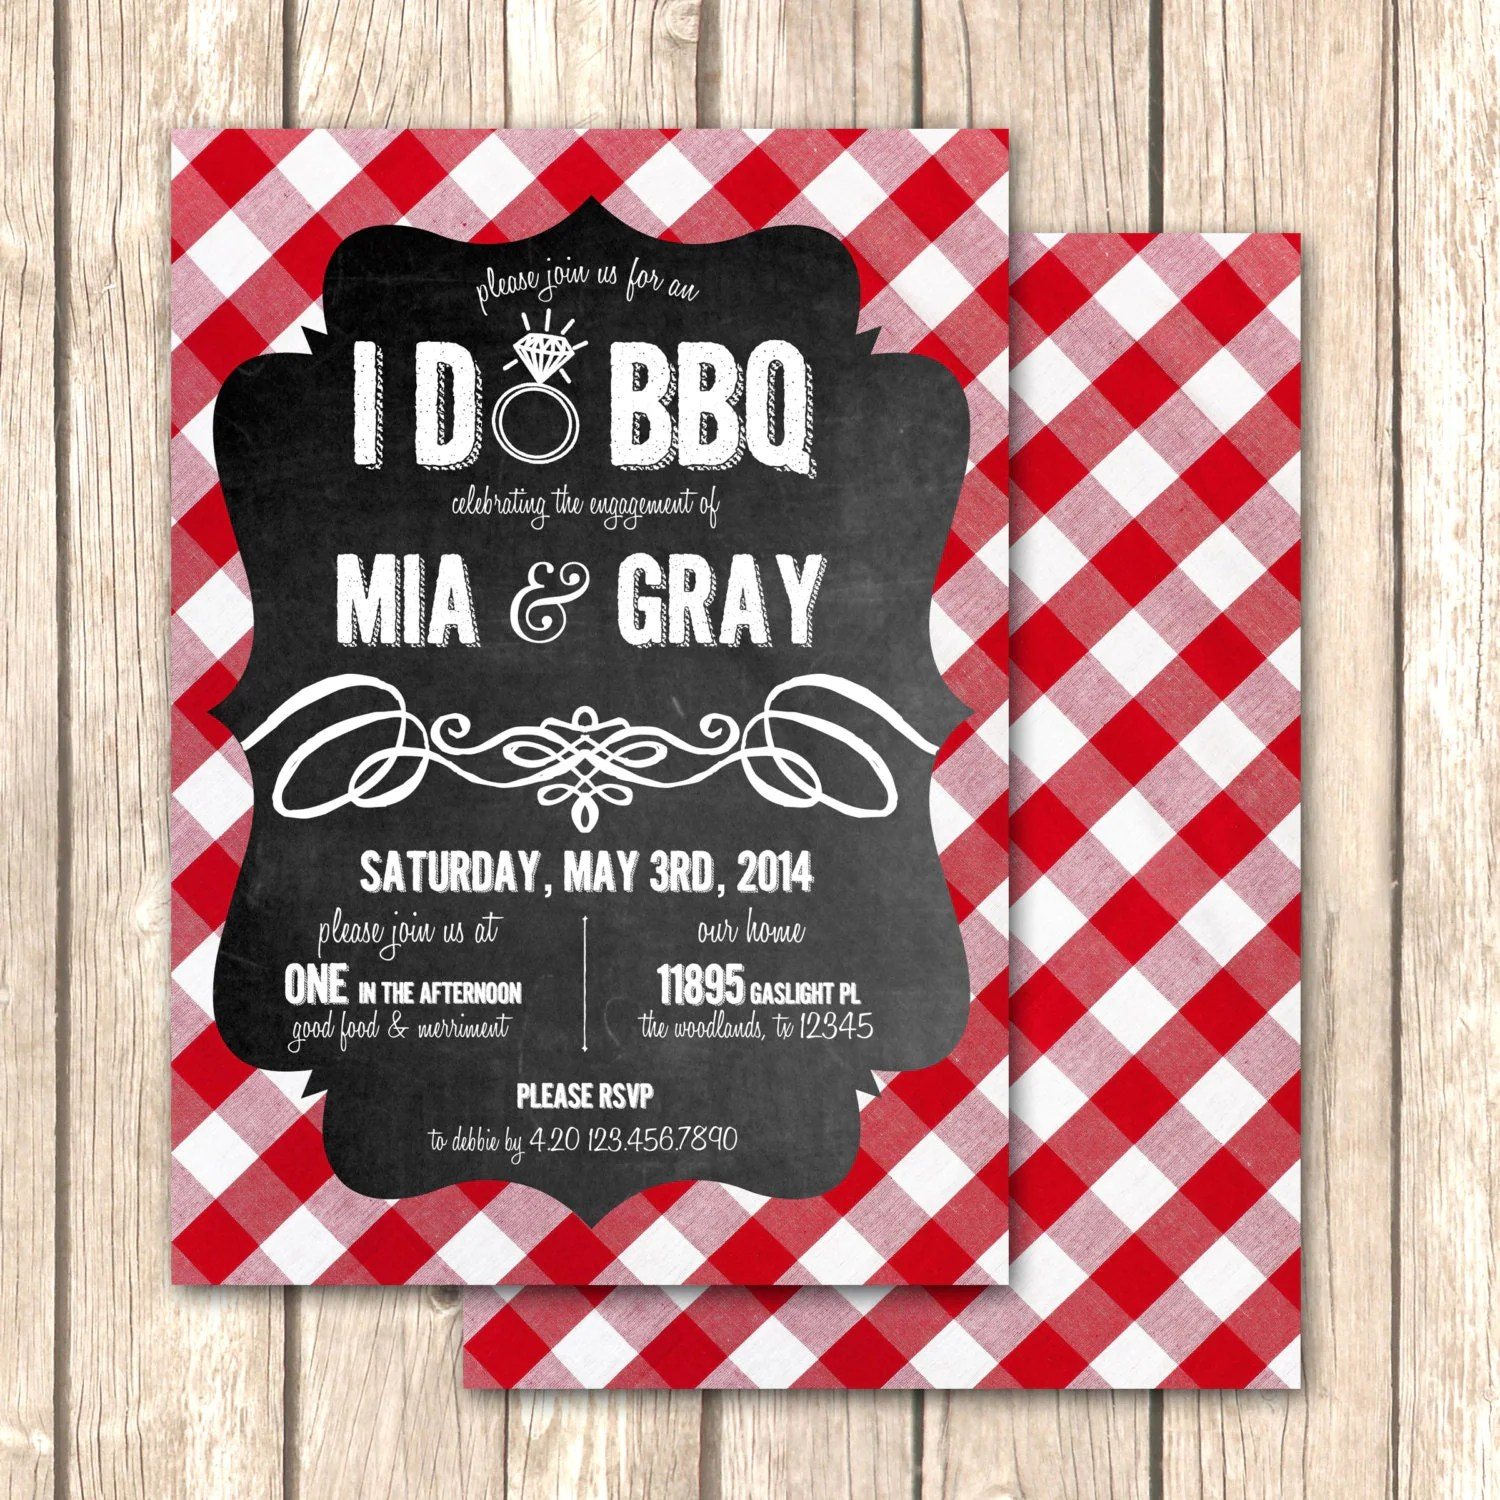 Barbeque Rehearsal Dinner Invitations   www.topsimages.com